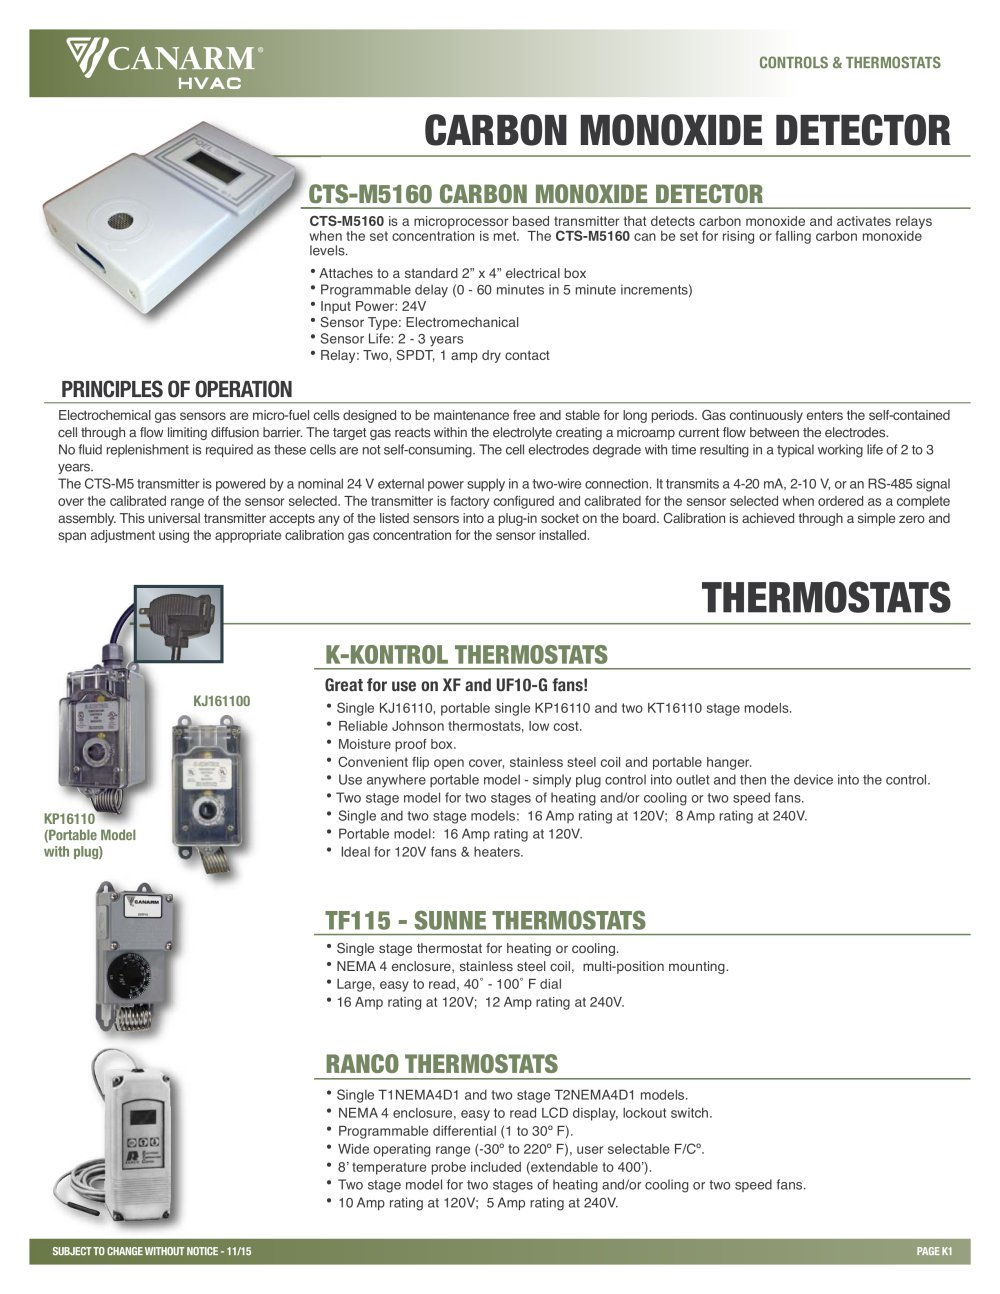 Ranco Thermostat Canarm Agsystems Pdf Catalogs Technical The Digital Temperature Controller 1 Pages